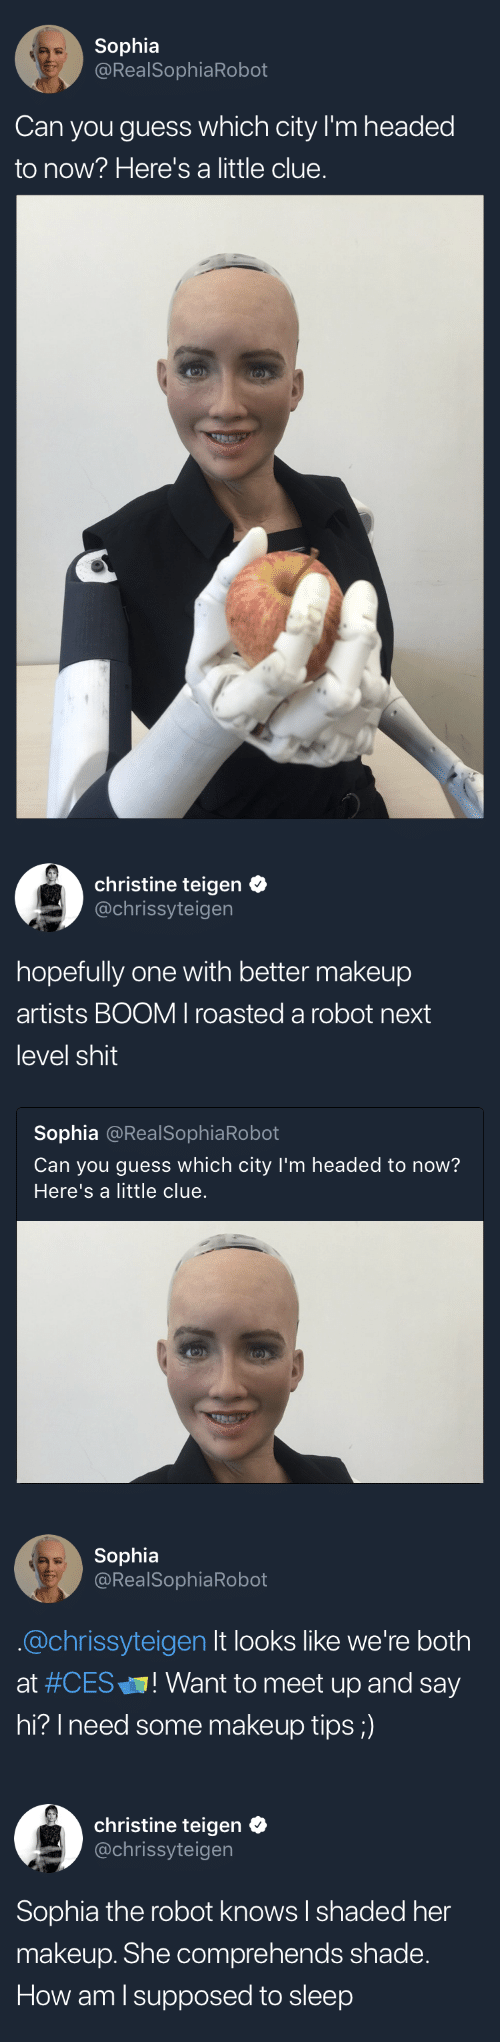 """Makeup, Shade, and Shit: Sophia  @RealSophiaRobot  Can you guess which city I'm headed  to now? Here's a little clue.   christine teigen  @chrissyteigen  hopefully one with better makeup  artists BOOM I roasted a robot next  level shit  Sophia @RealSophiaRobot  Can you guess which city I'm headed to now?  Here's a little clue   Sophia  @RealSophiaRobot  @chrissyteigen It looks like we're both  at #CES"""" ! Want to meet up and say  hi? Ineed some makeup tips;)   christine teigen  @chrissyteigen  Sophia the robot knows I shaded her  makeup. She comprehends shade.  How am l supposed to sleep"""